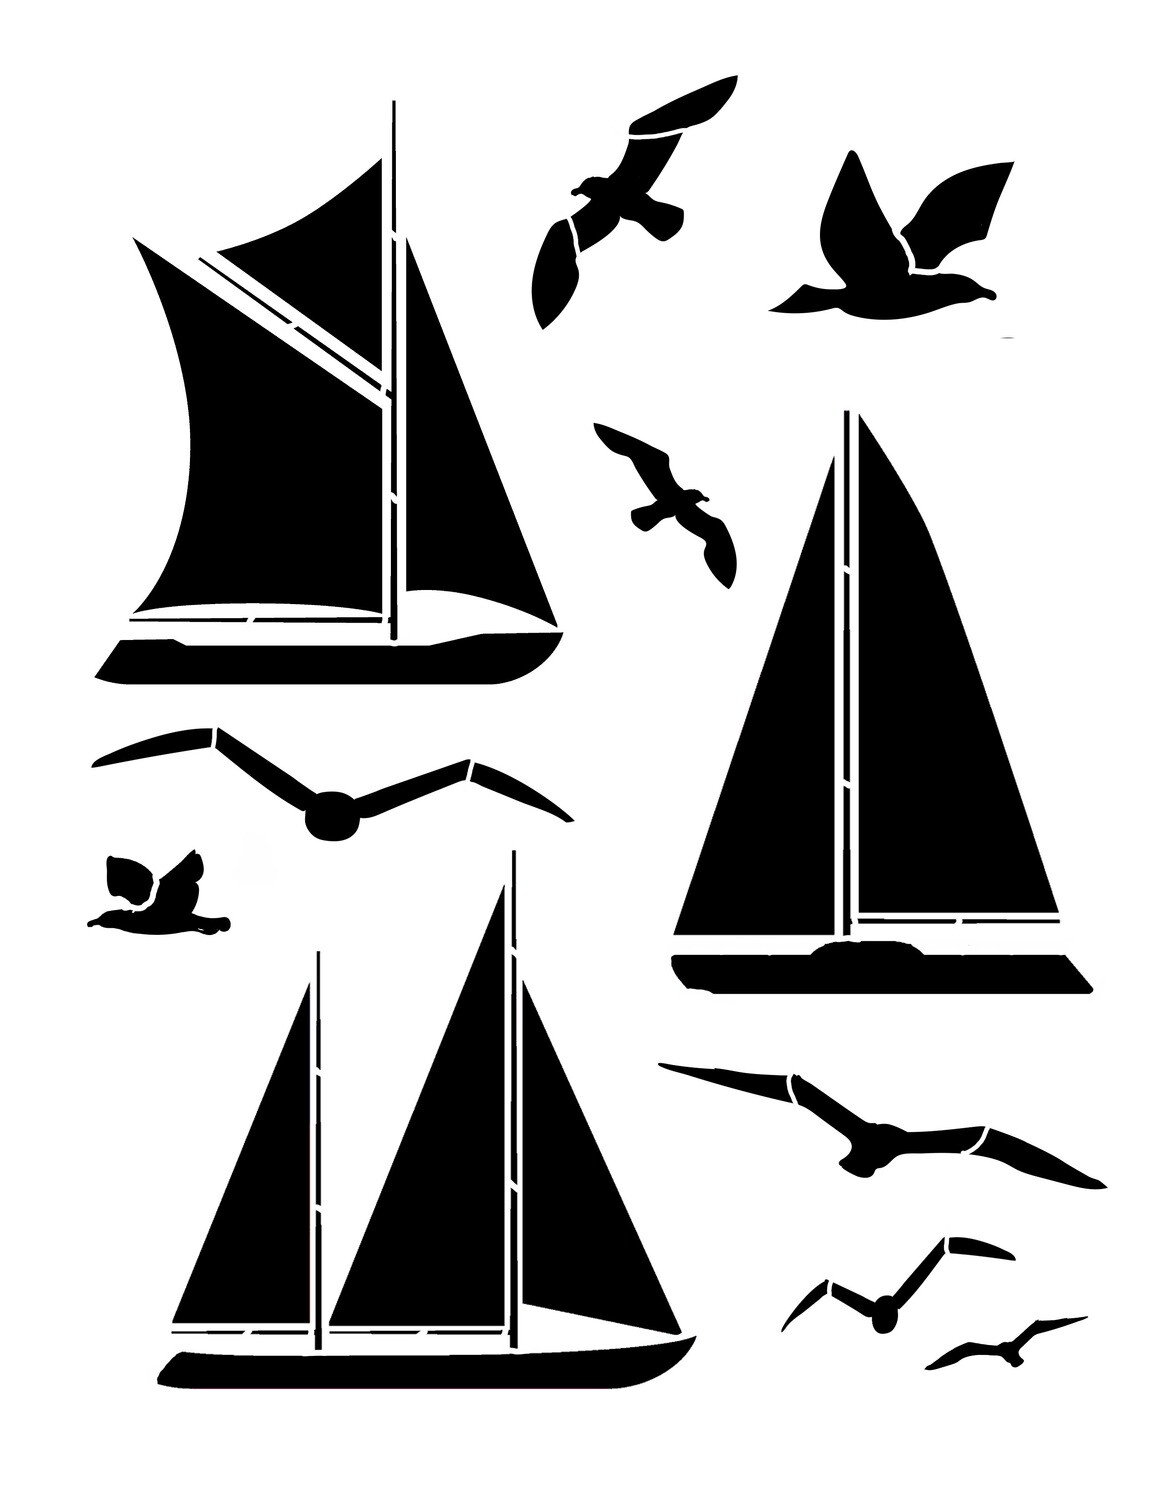 Boats and Birds 8x10 Stencil